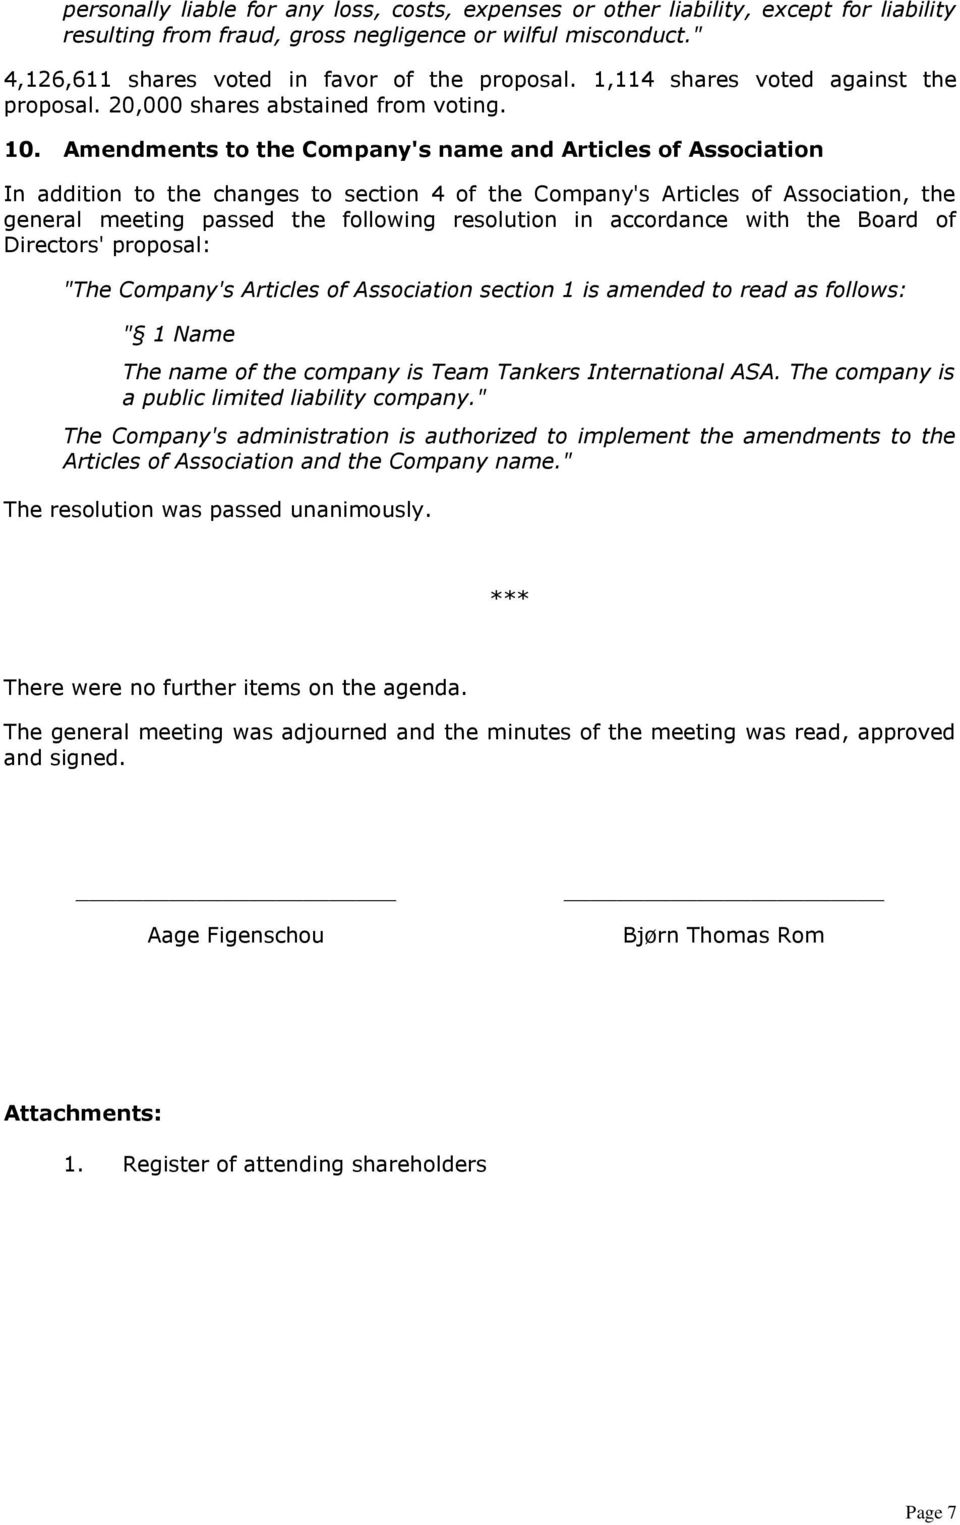 Amendments to the Company's name and Articles of Association In addition to the changes to section 4 of the Company's Articles of Association, the general meeting passed the following resolution in